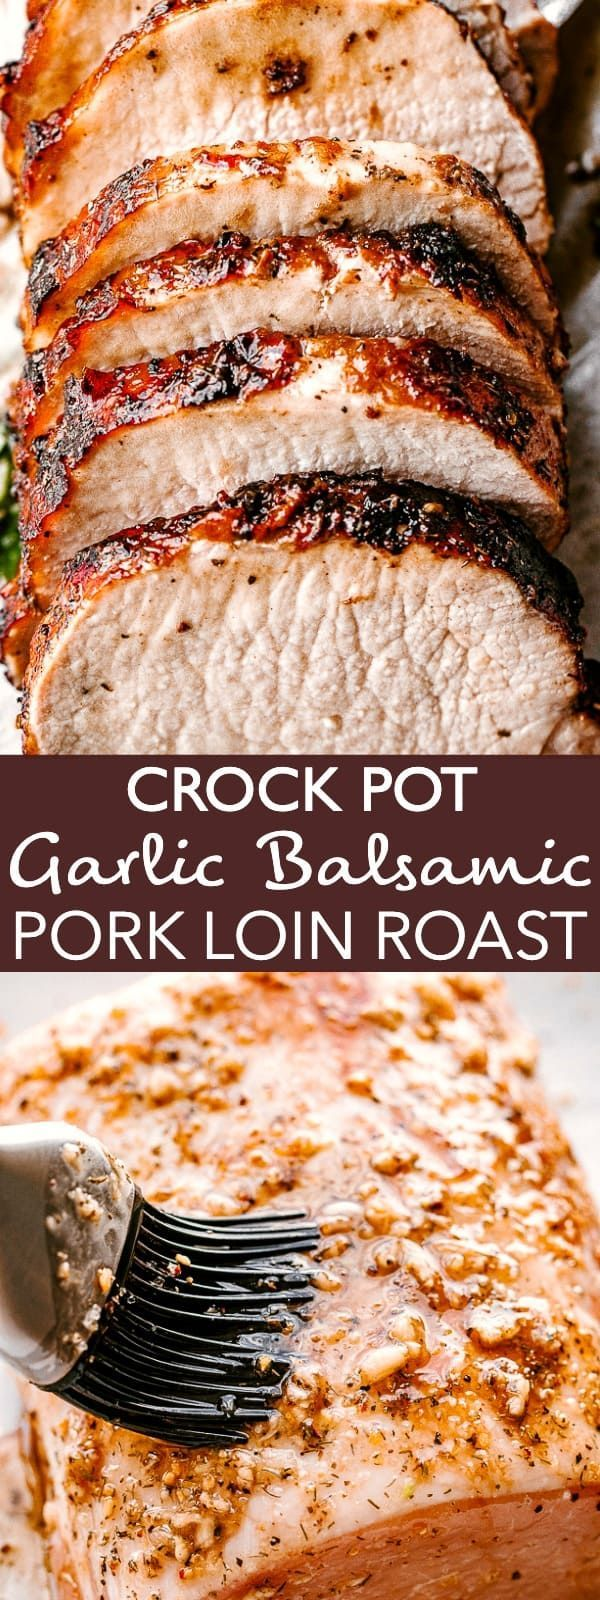 The Most Incredibly Flavorful Crock Pot Garlic Balsamic Pork Loin!